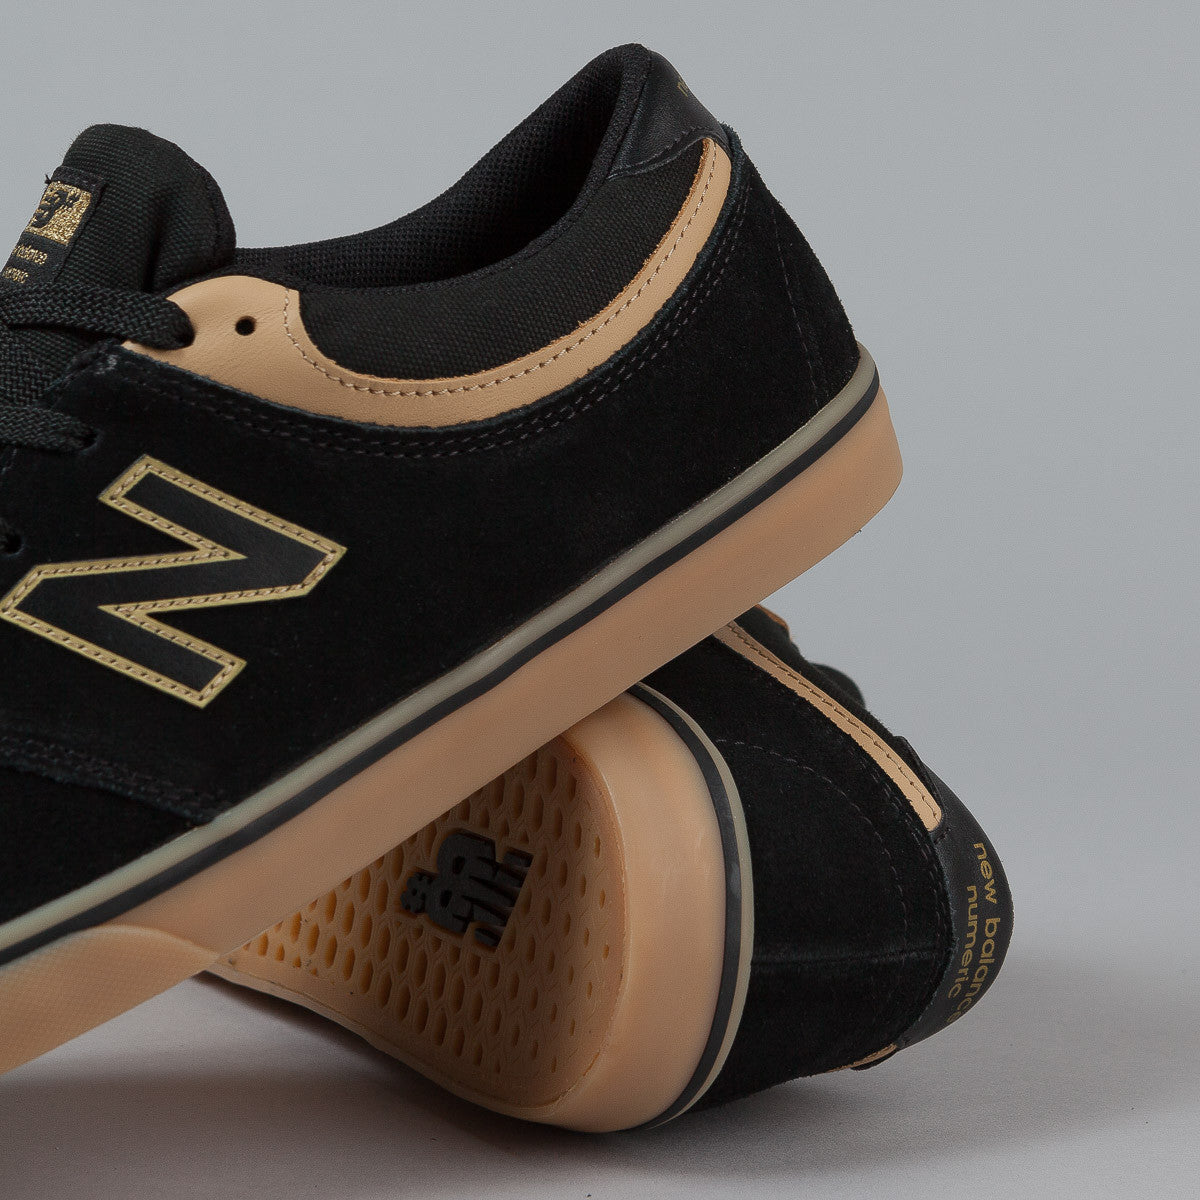 New Balance Numeric Quincy 254 Shoes - Black / Tan